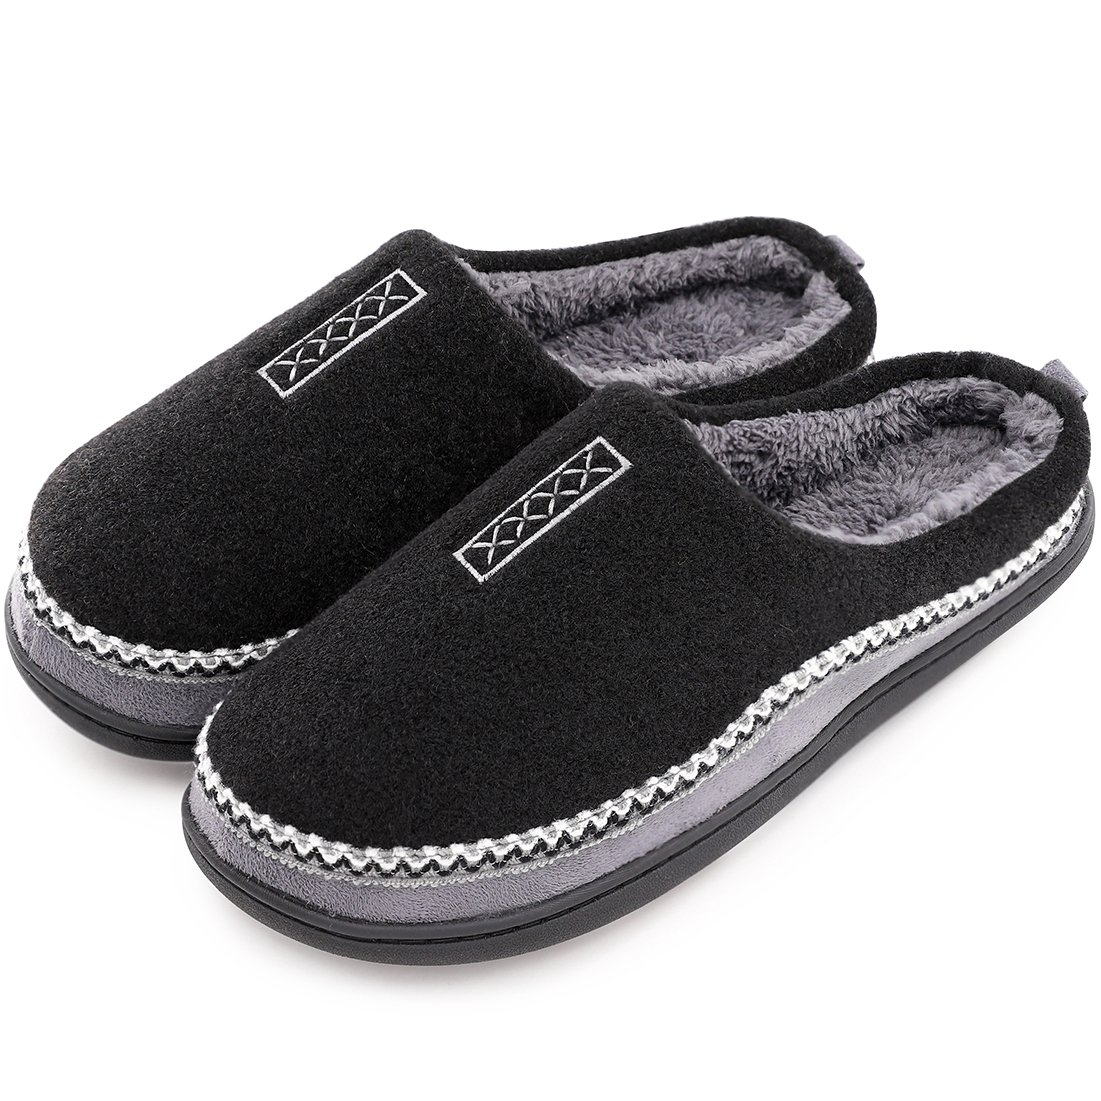 Slippers MENS WIDE FITTING SLIPPERS EEE